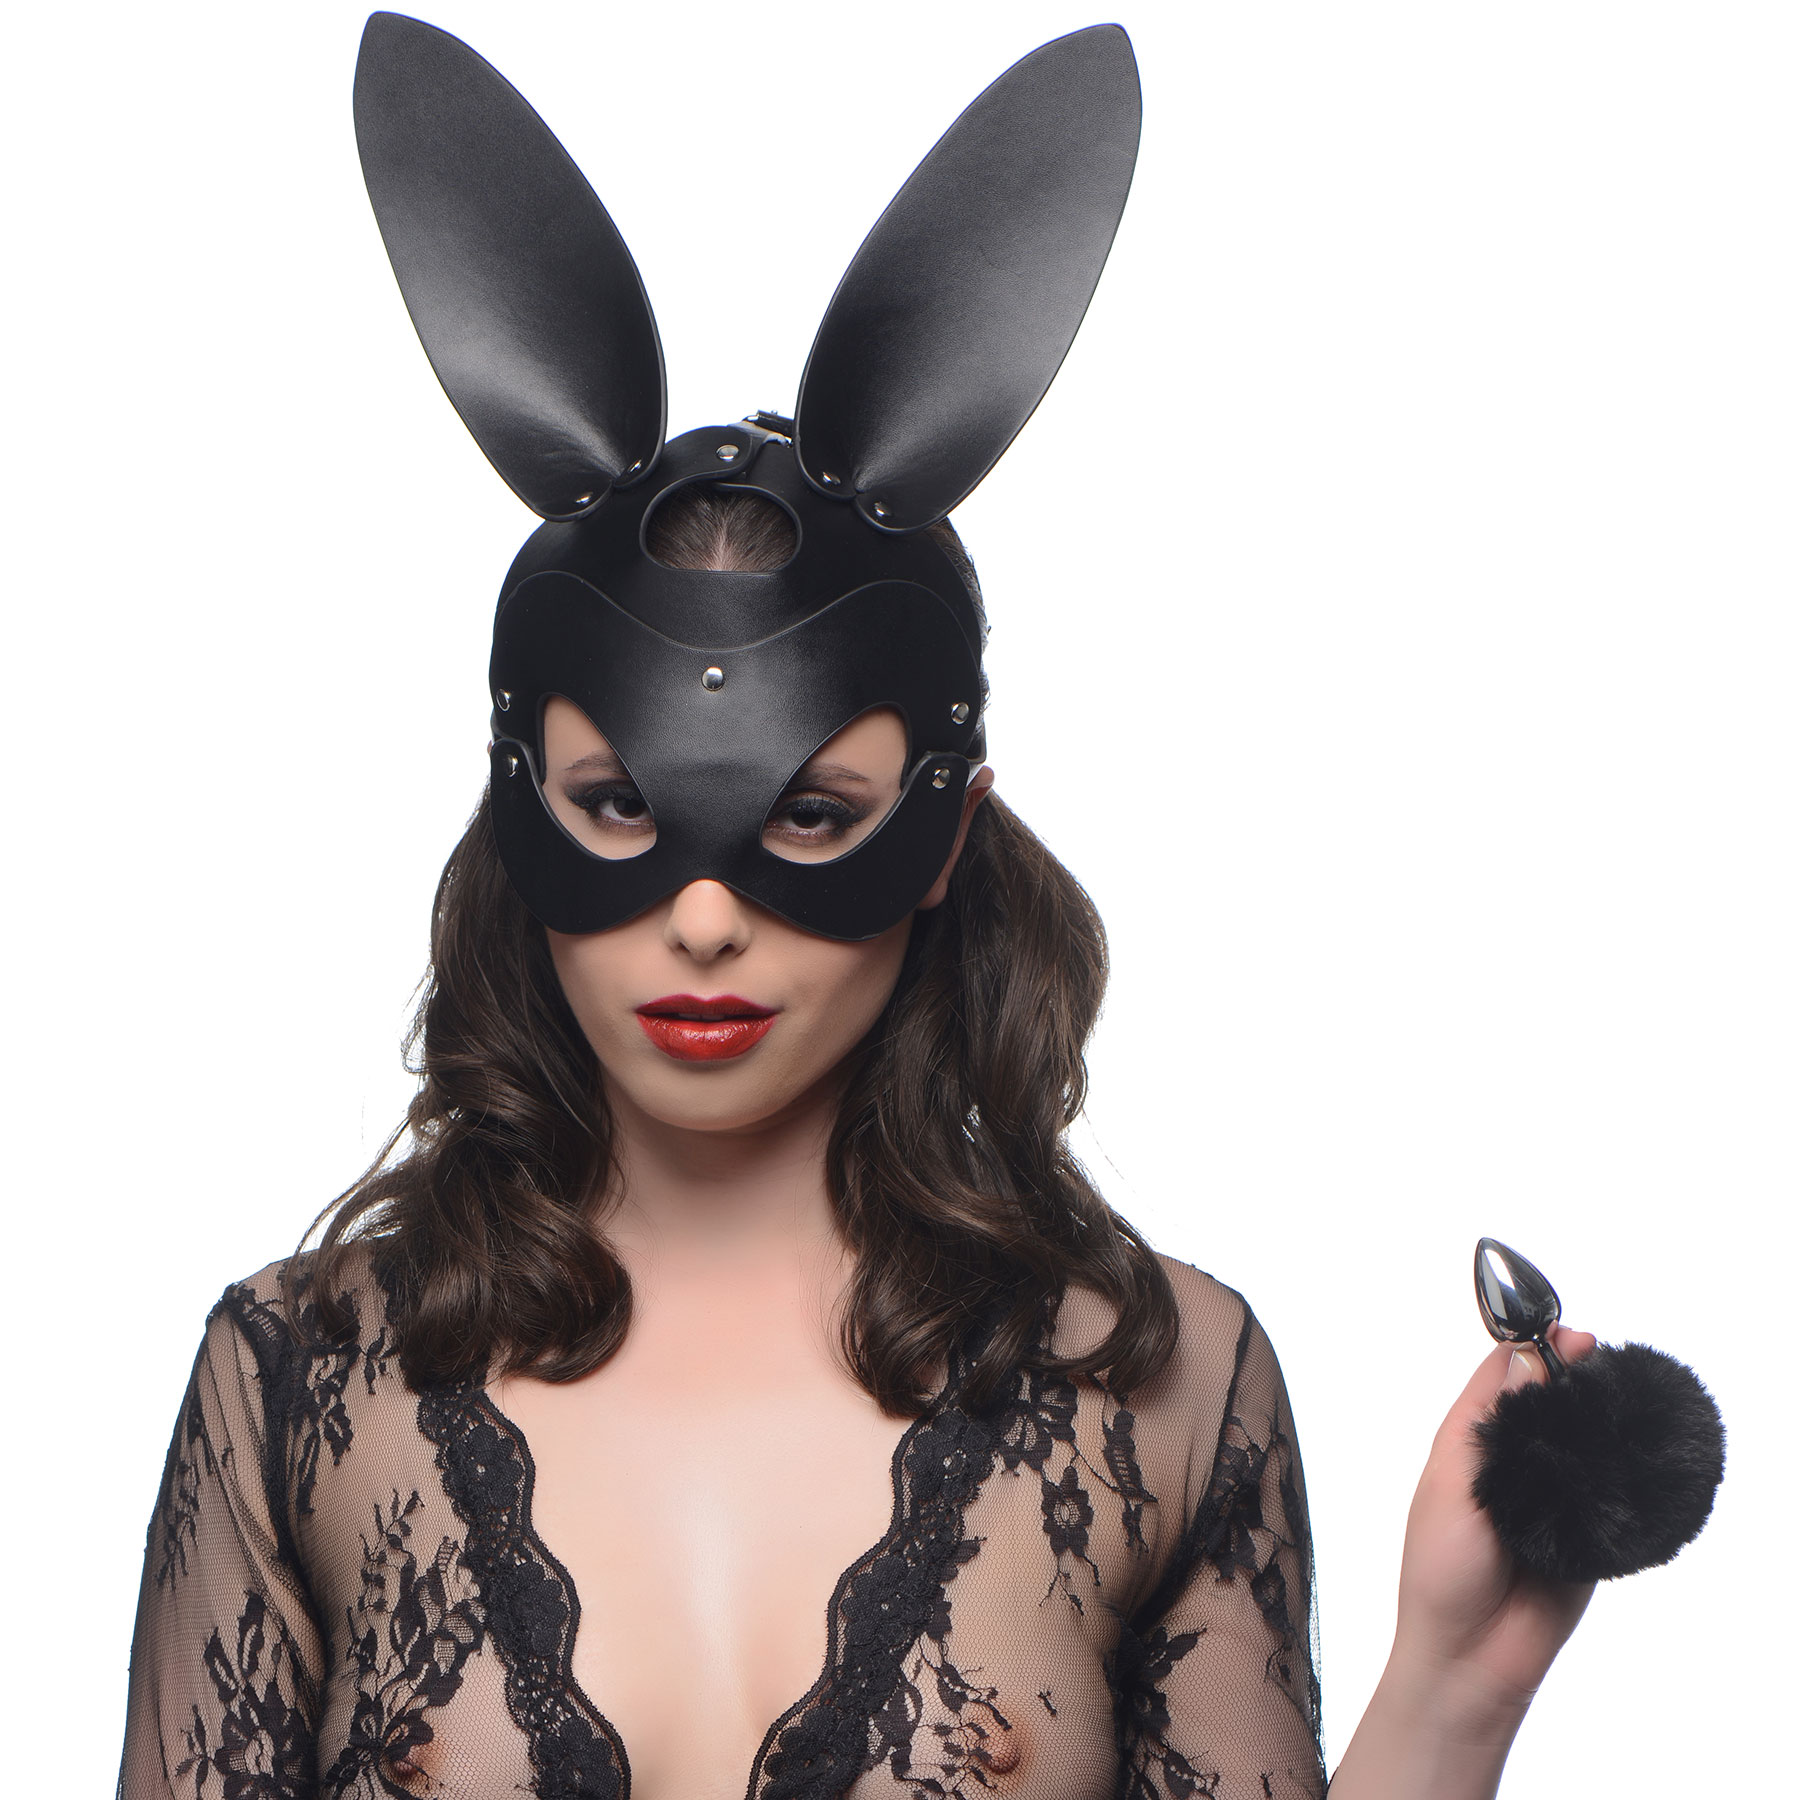 Tailz Aluminum Alloy Anal Plug With Black Faux Fur Bunny Tail & Matching Bunny Mask - On Model